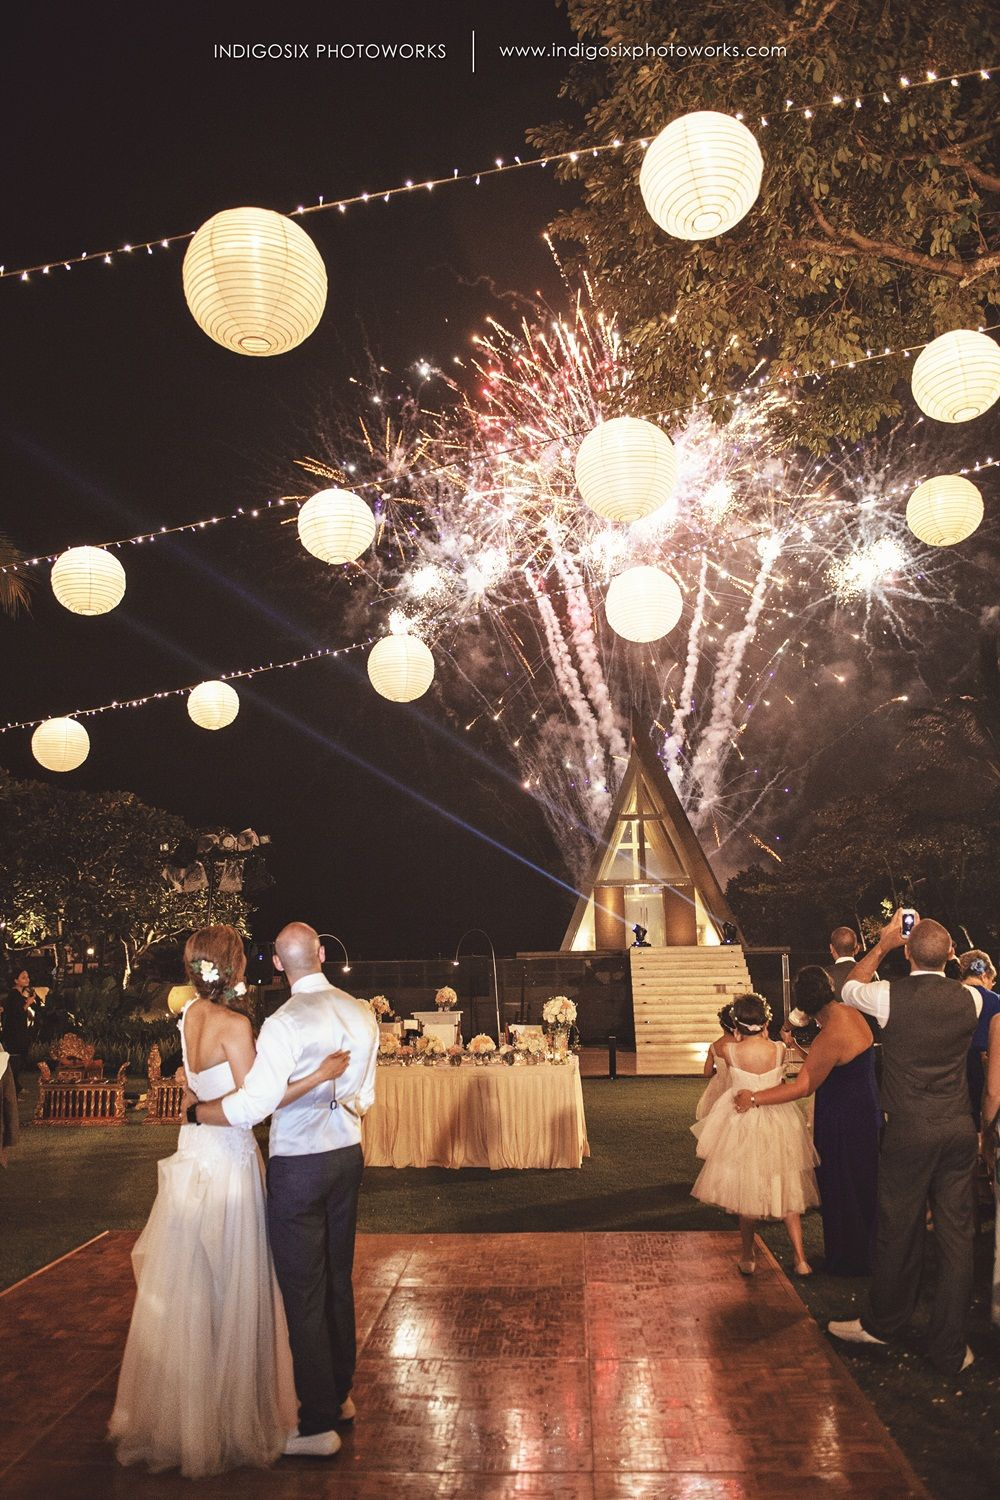 Bali wedding venues on the beach  Beige tulle dresses and little hand bouquets are the essence of